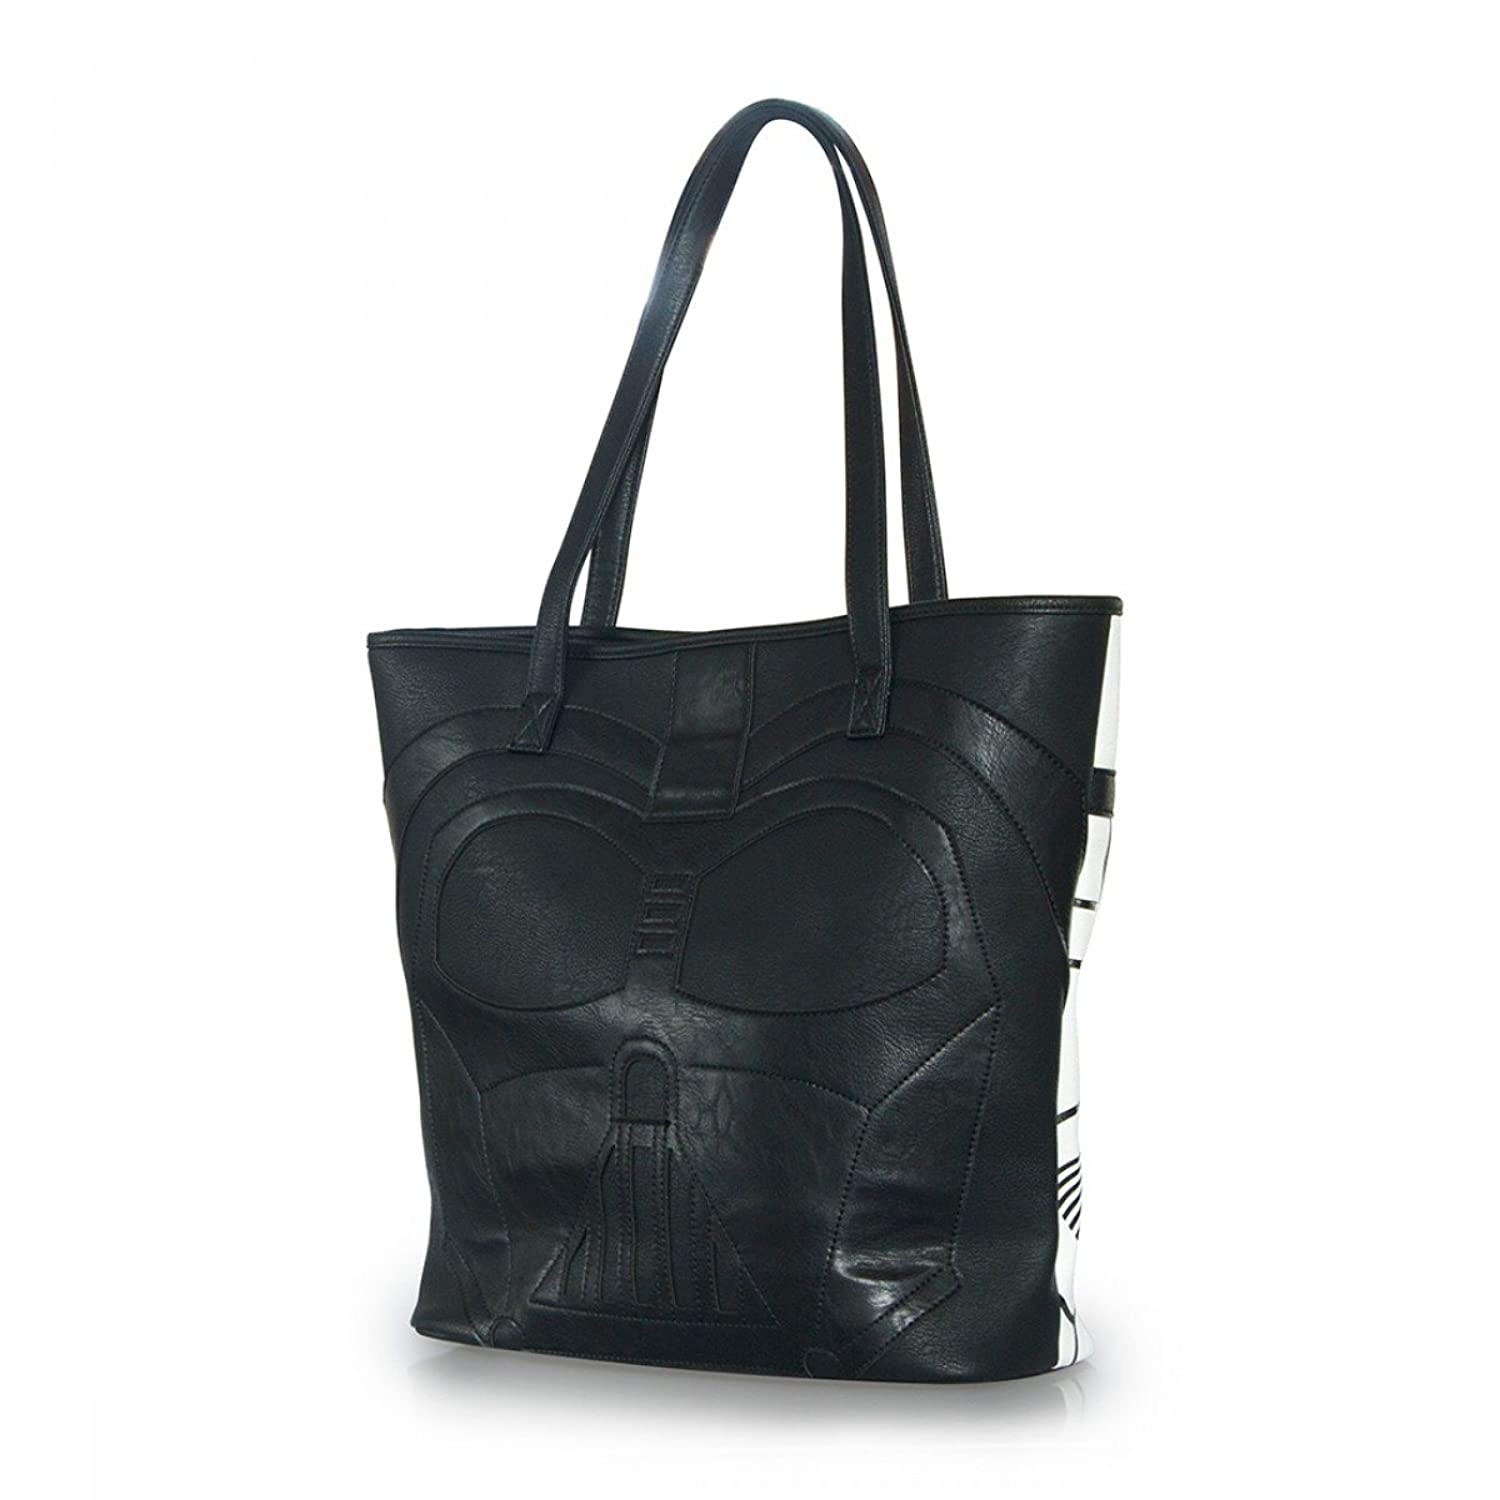 Loungefly x Star Wars Darth Vader / Stormtrooper Faux Leather 2-Sided Tote